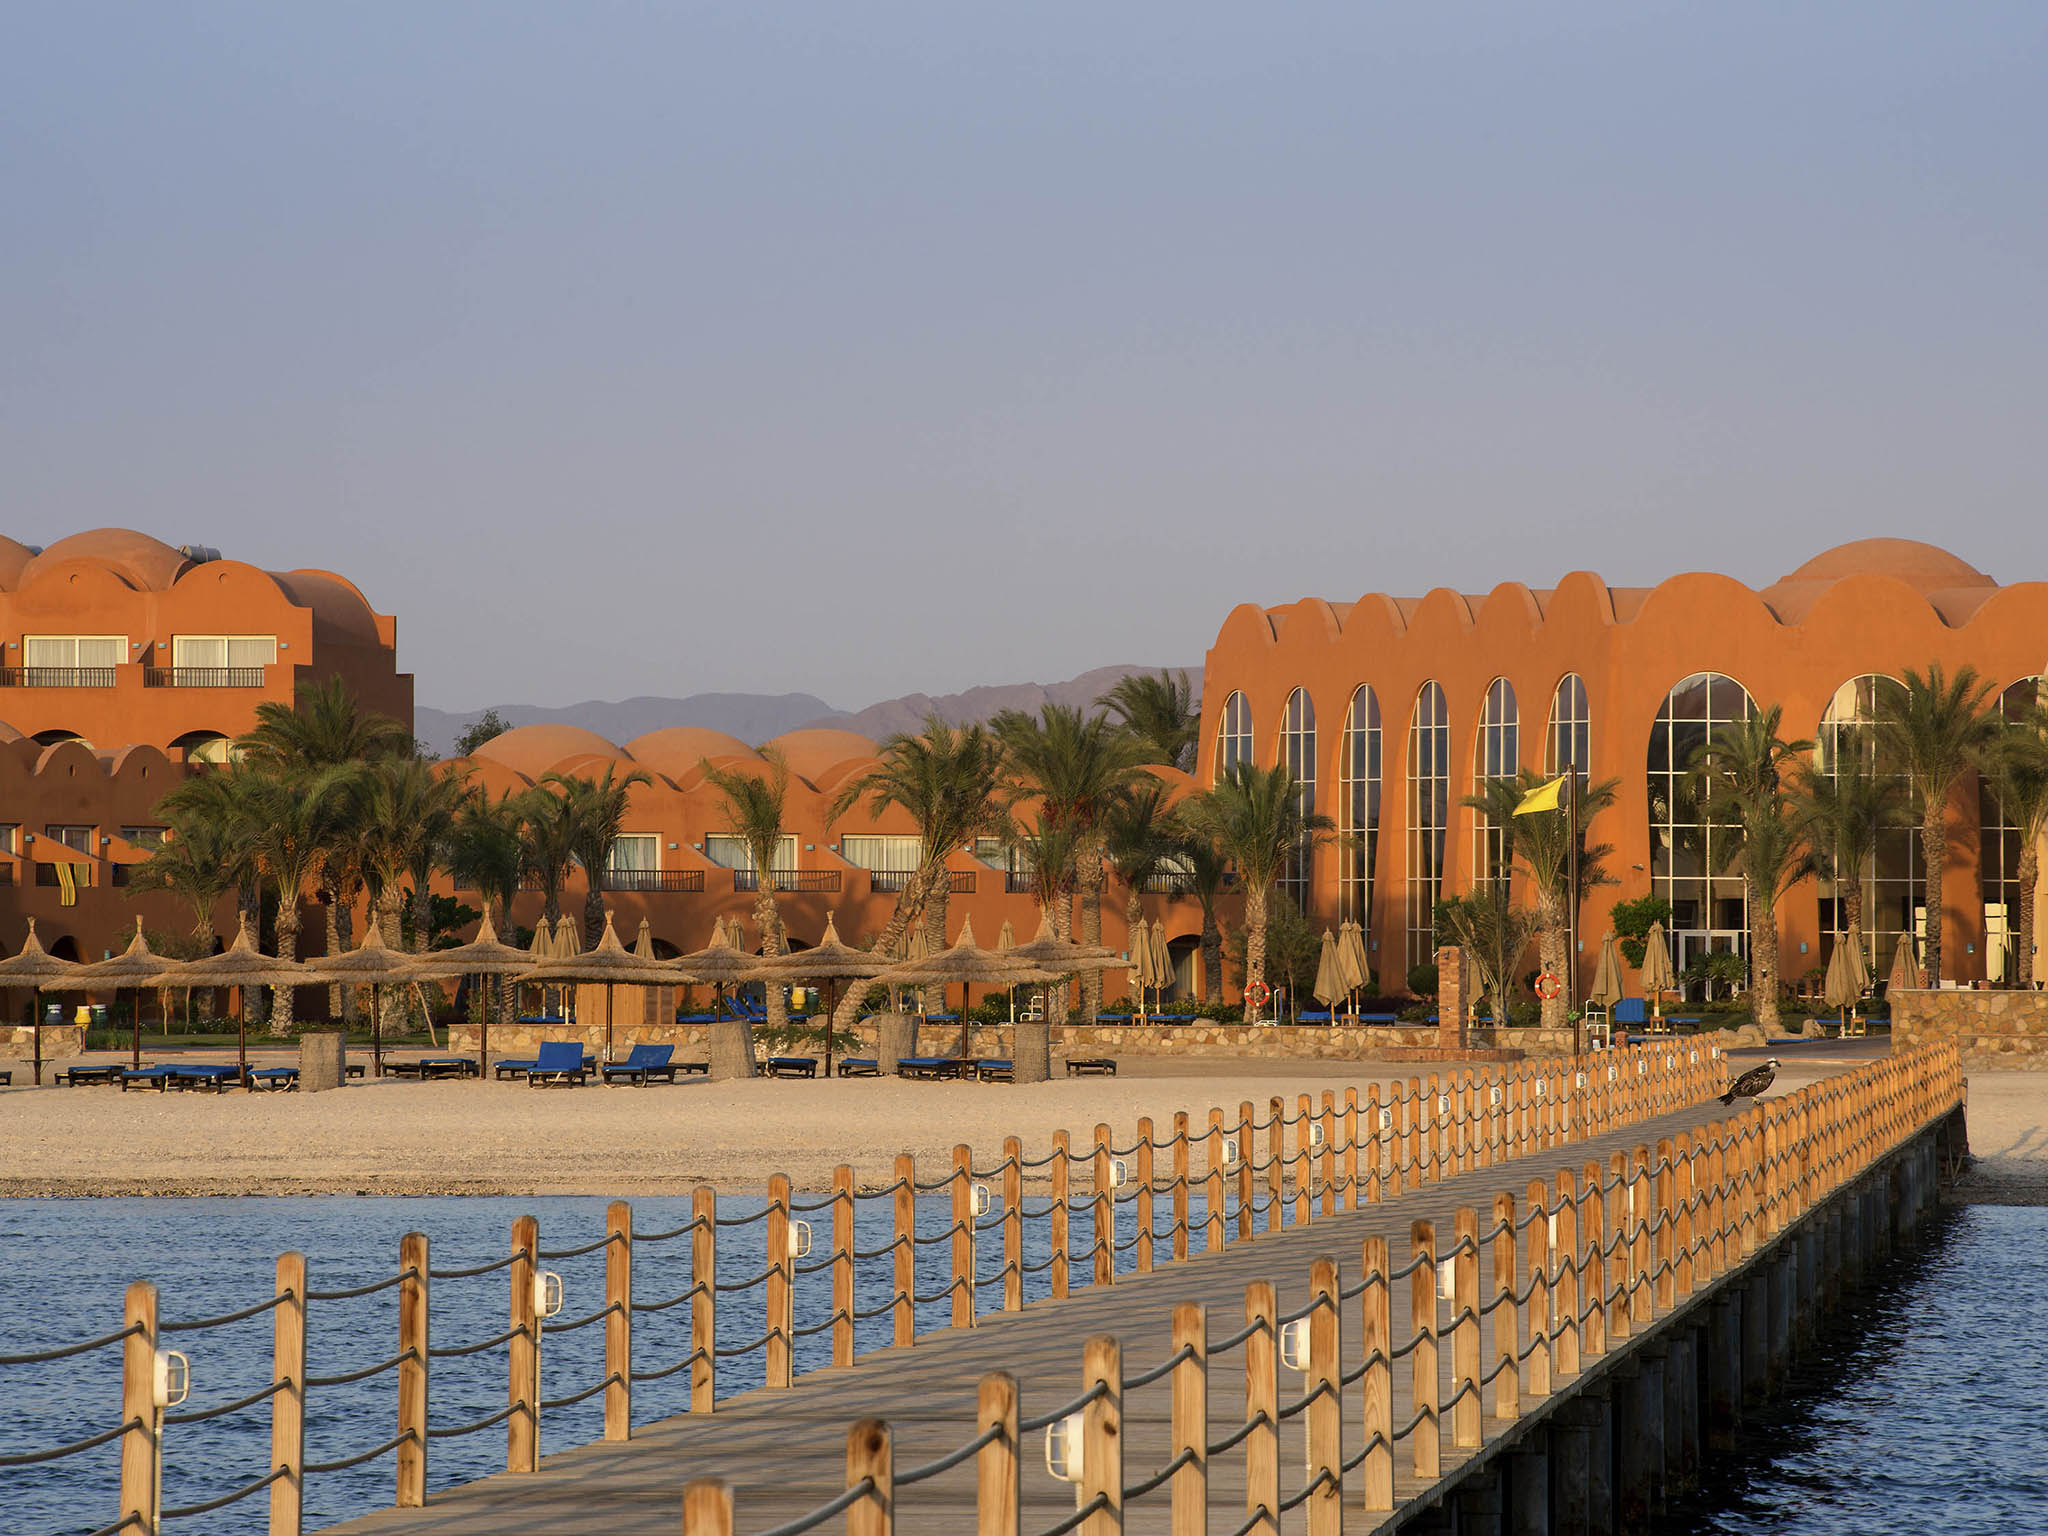 Novotel Marsa Allam Hotel - 4 Days/3 Nights